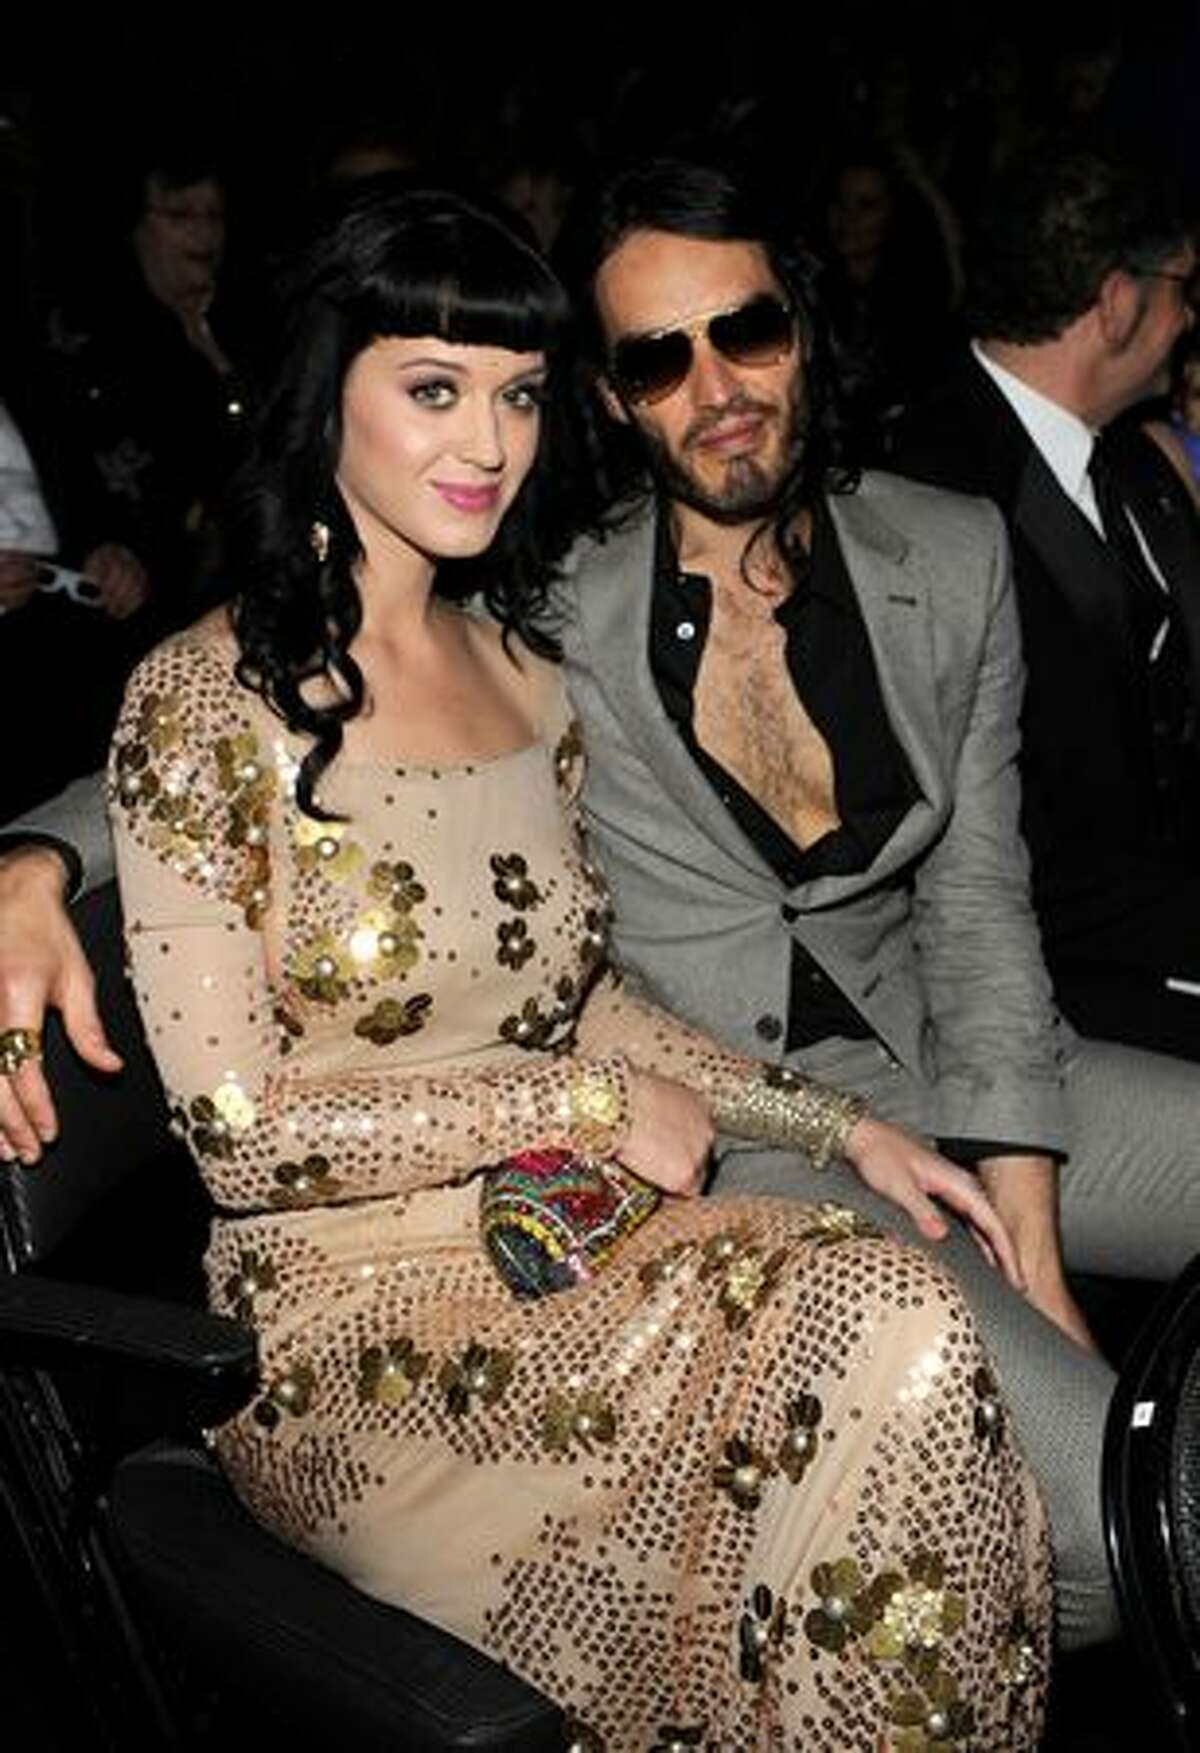 Singer Katy Perry and comedian Russell Brand in the audience.